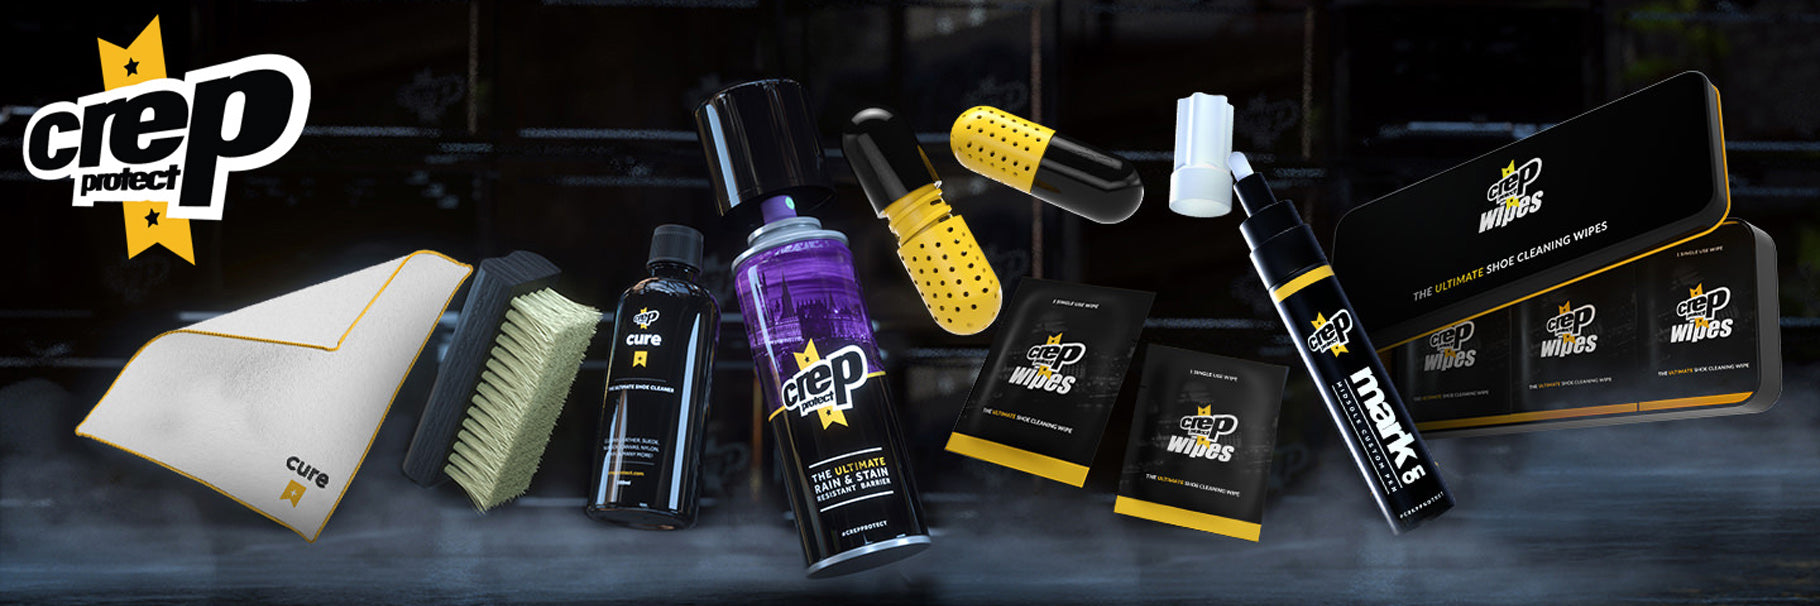 Crep Protect Brand Banner